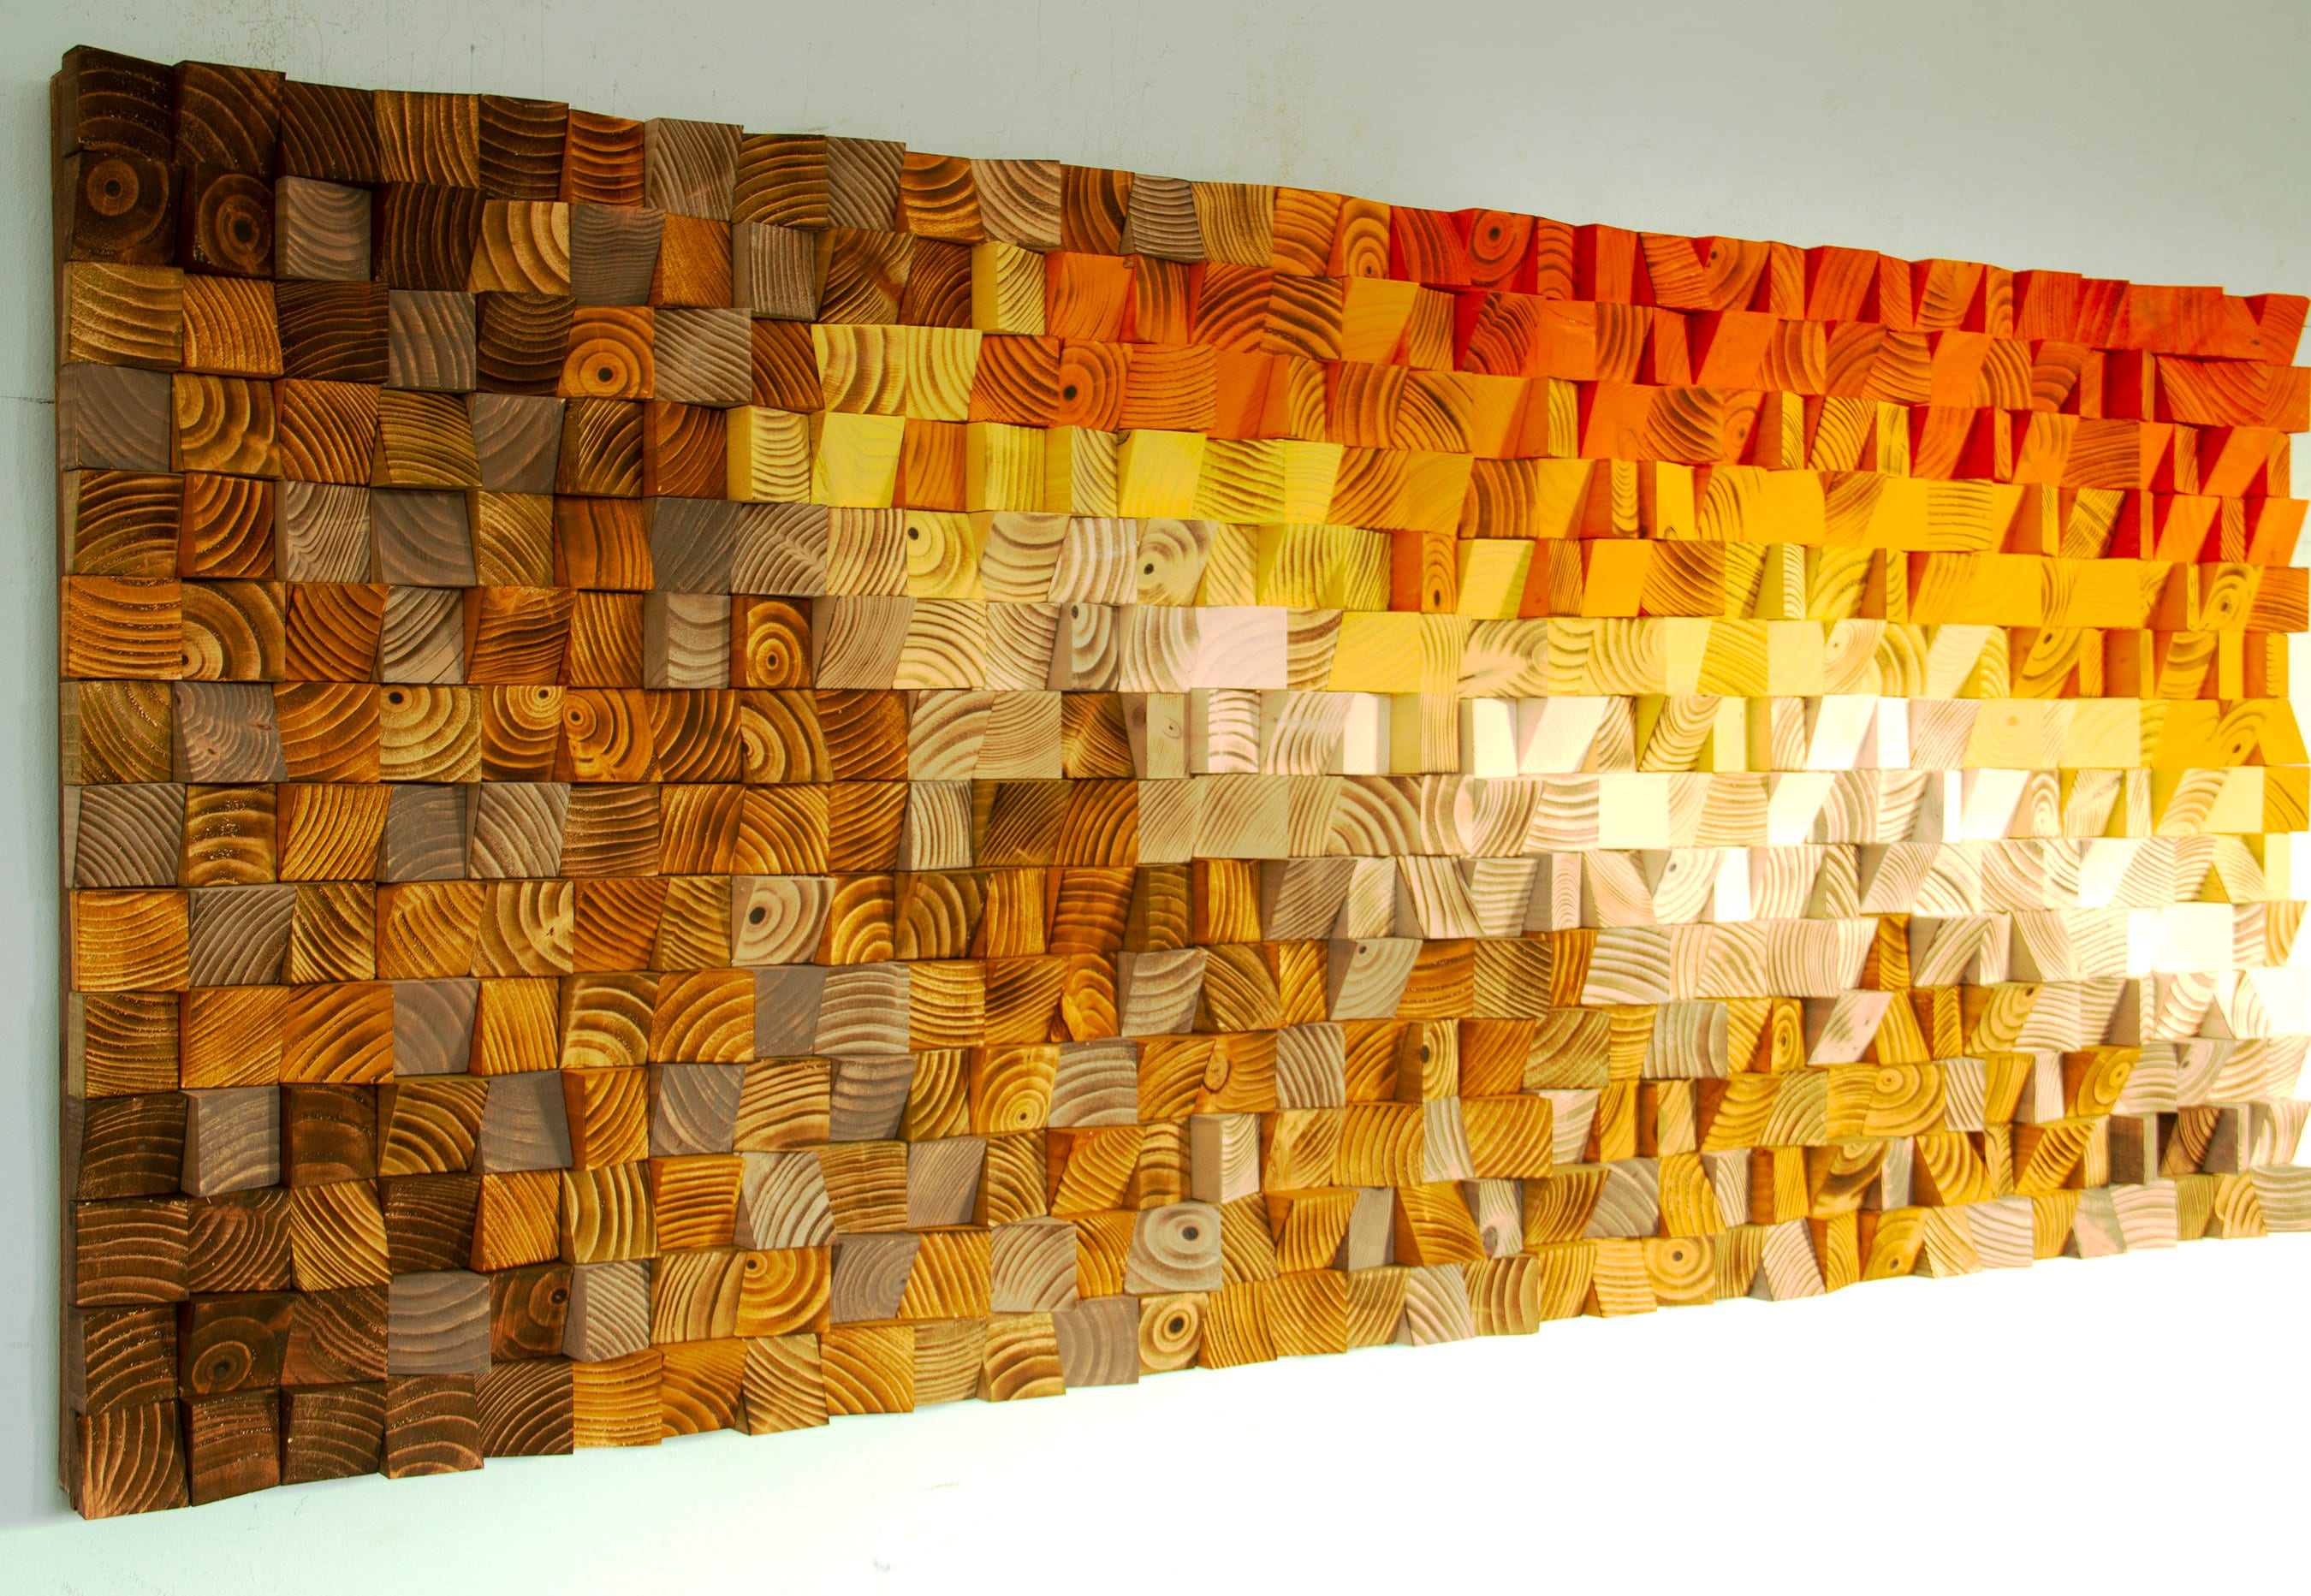 Wood Art 3D Wall Art Abstract painting on wood Wall Installation